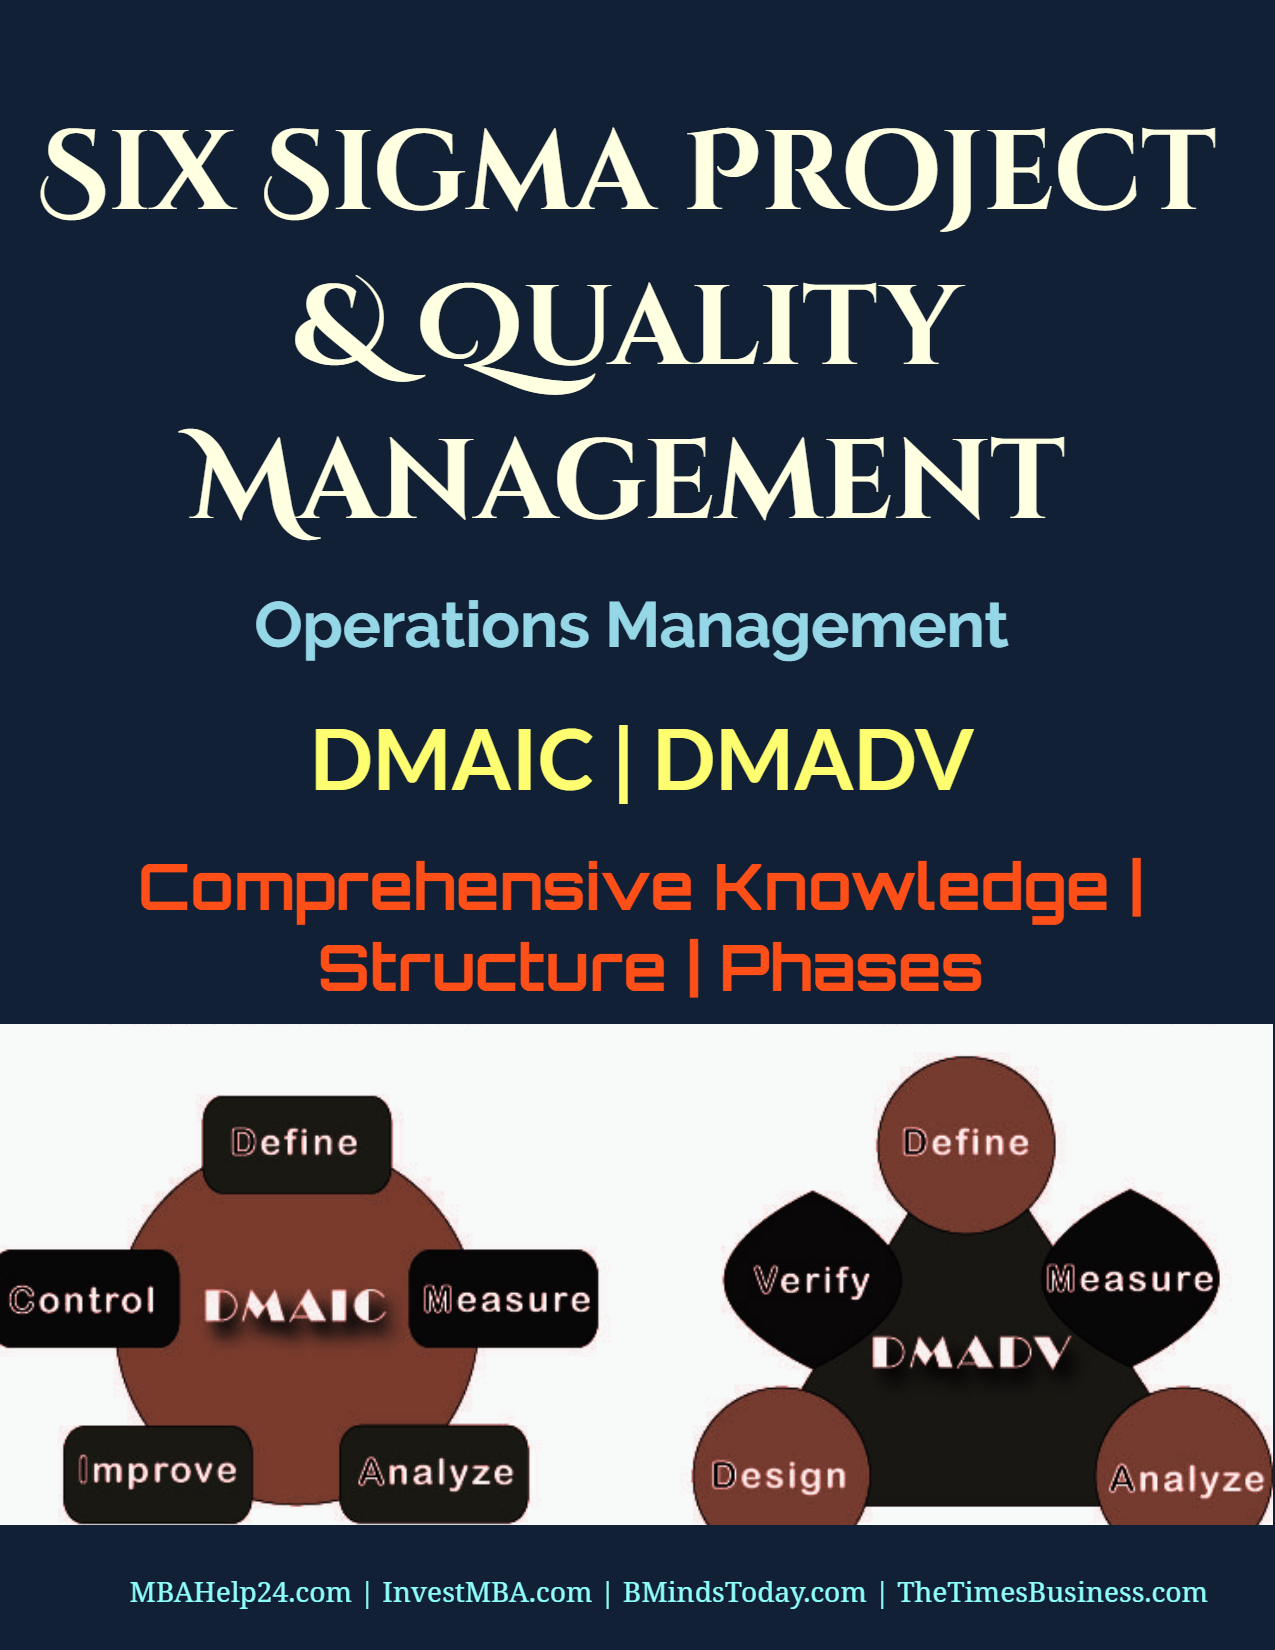 Six Sigma Project and Quality Management | DMAIC | DMADV | Structure | Phases